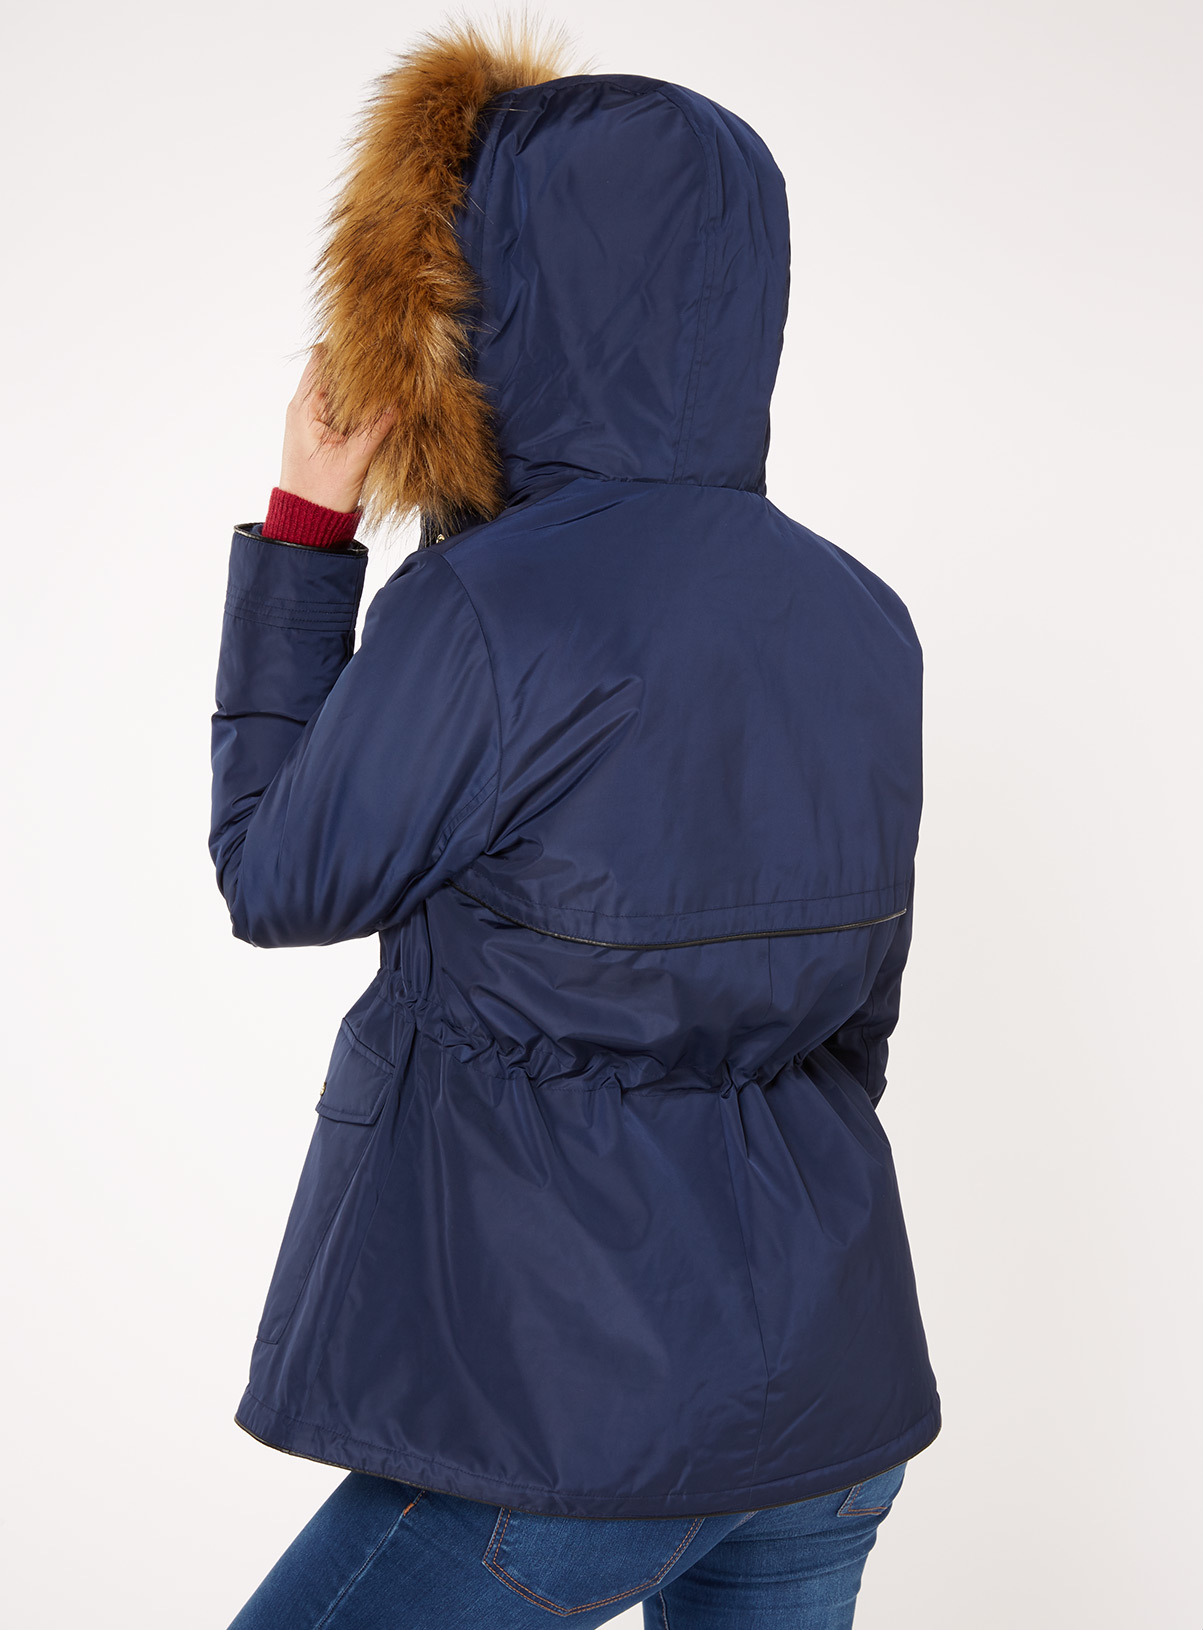 Womens Navy Short Parka Coat | Tu clothing